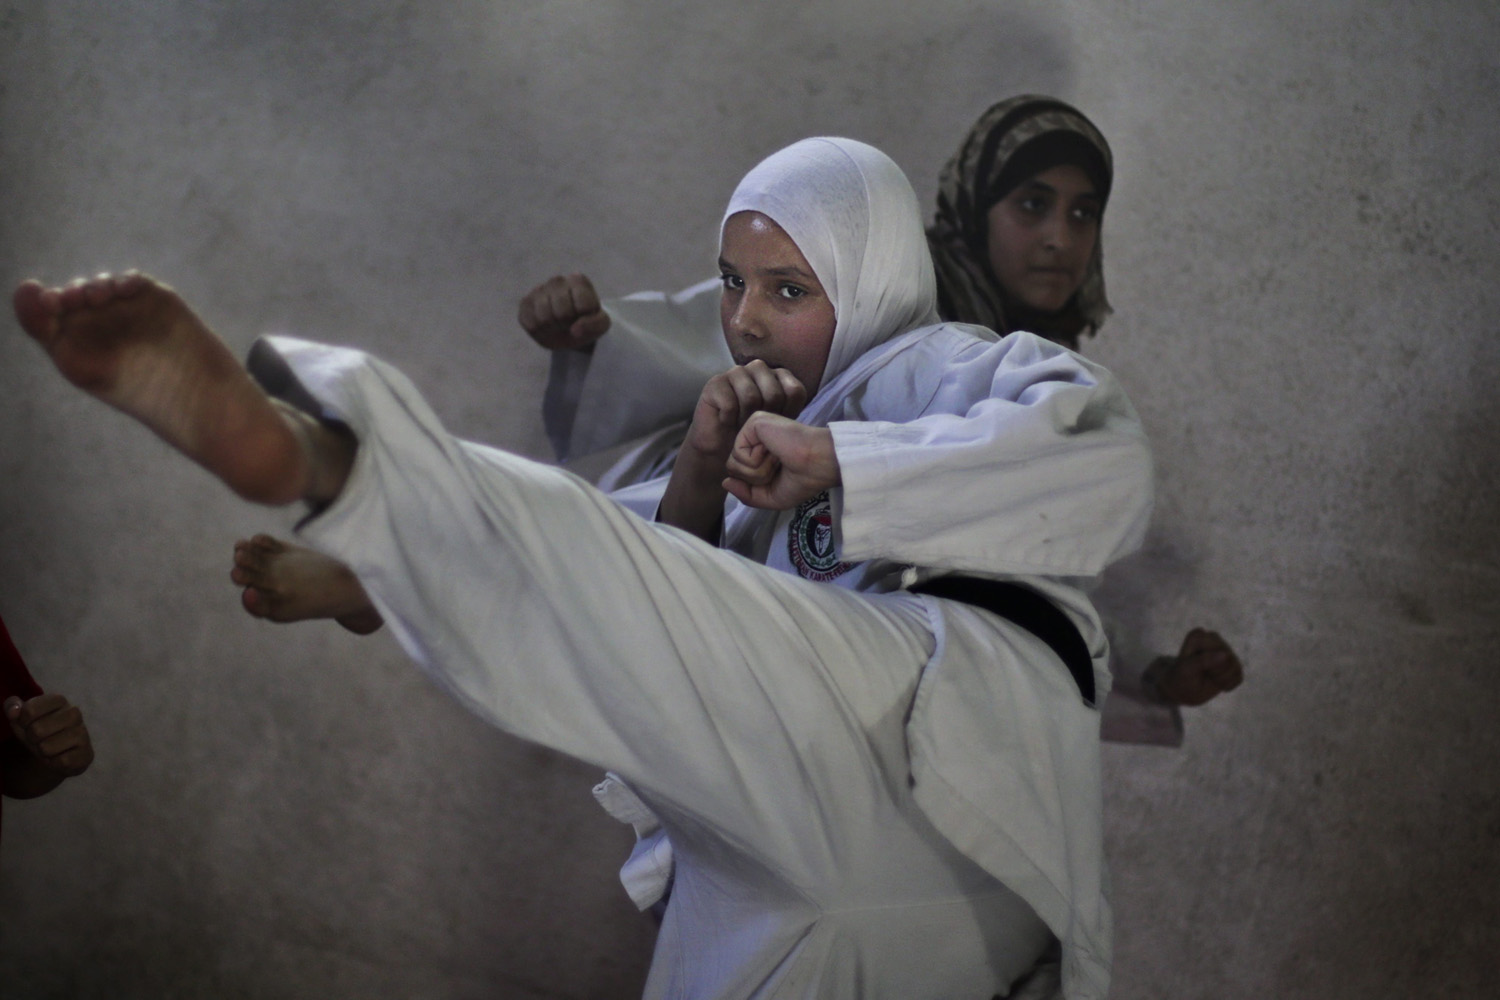 June 1, 2013. Palestinian girls attend a Karate class at a Gaza sports club in the Gaza Strip.